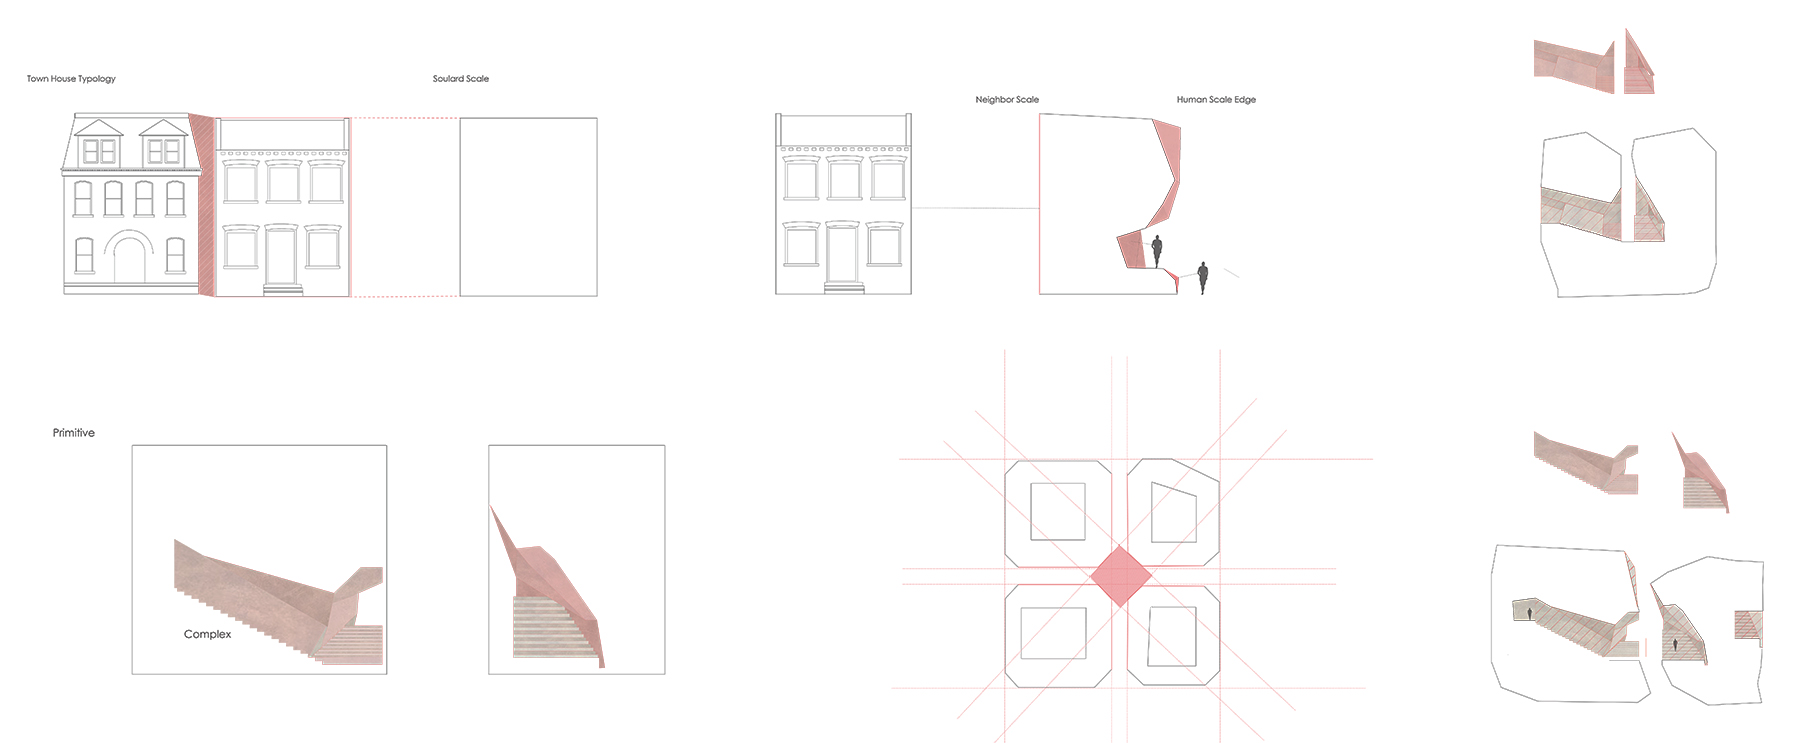 Makio studied the scale of the buildings in the neighborhood, dividing his building volume into four parts to keep the volumes and gaps fitting with the surroundings. He also studied the exiting gaps and then developed a language with more variation, based on his eco-unit volumetric study.